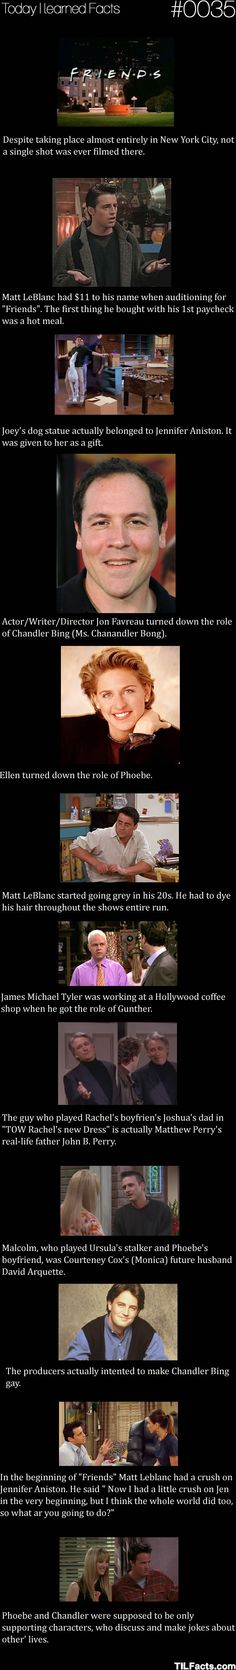 Interesting facts for 'Friends' fans...